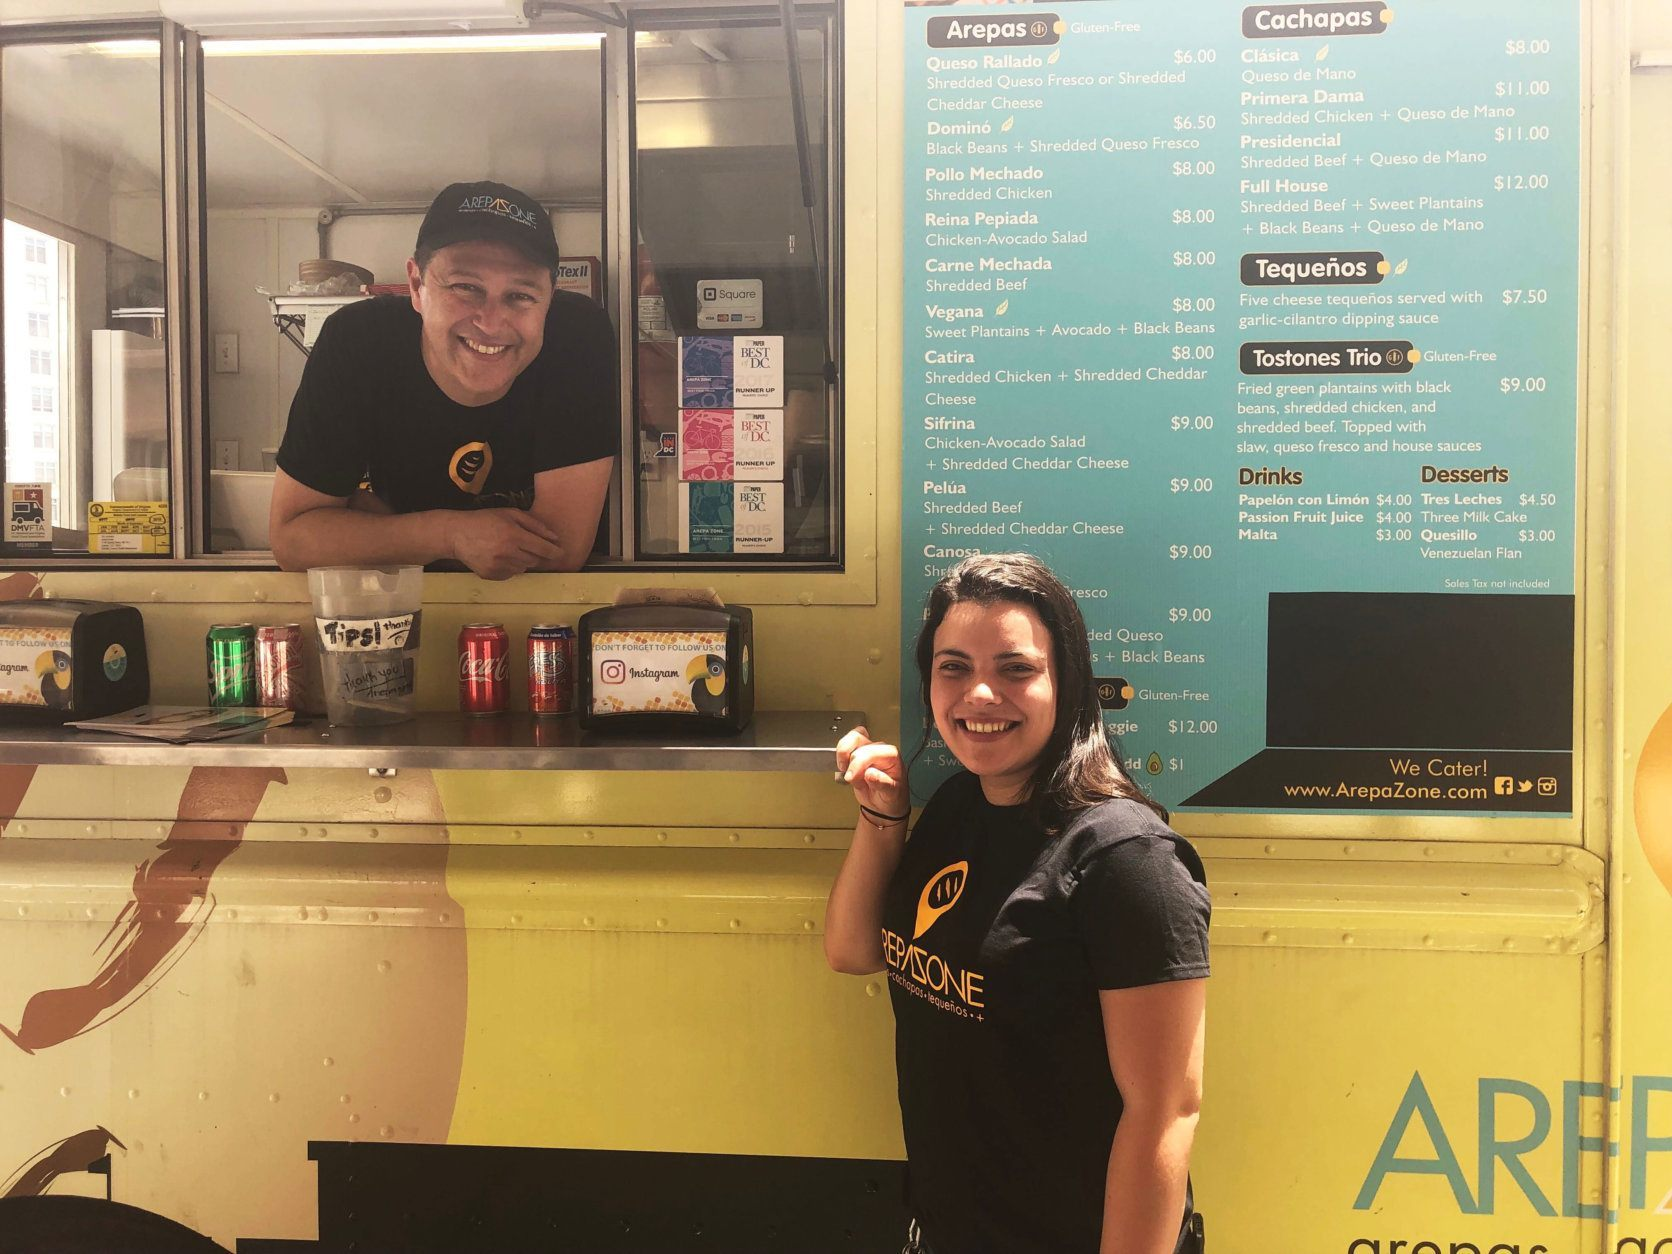 "<p><span style=""font-weight: 400;"">In the last few years, Arepa Zone's reach has grown beyond its four wheels. Febres and </span><span style=""font-weight: 400;"">Arellano</span><span style=""font-weight: 400;""> have a brick-and-mortar restaurant on 14th Street NW, plus stands inside D.C.'s busy Union Market and at D.C. United's Audi Field. </span></p> <p><span style=""font-weight: 400;"">With its growth, Febres said keeping the food as authentic as possible is always top-of-mind. She said she knows she's doing something right when her restaurant is full of Venezuelans. </span></p> <p><span style=""font-weight: 400;"">""I always sort of stay staring at a person when they're biting into their arepa. When I see them licking their fingers and stuff, I'm like, 'OK. They're coming back.'""</span></p> <p><em><span style=""font-weight: 400;"">WTOP&#8217;s Carlos Prieto contributed to this story. </span></em></p> <p>&nbsp;</p>"